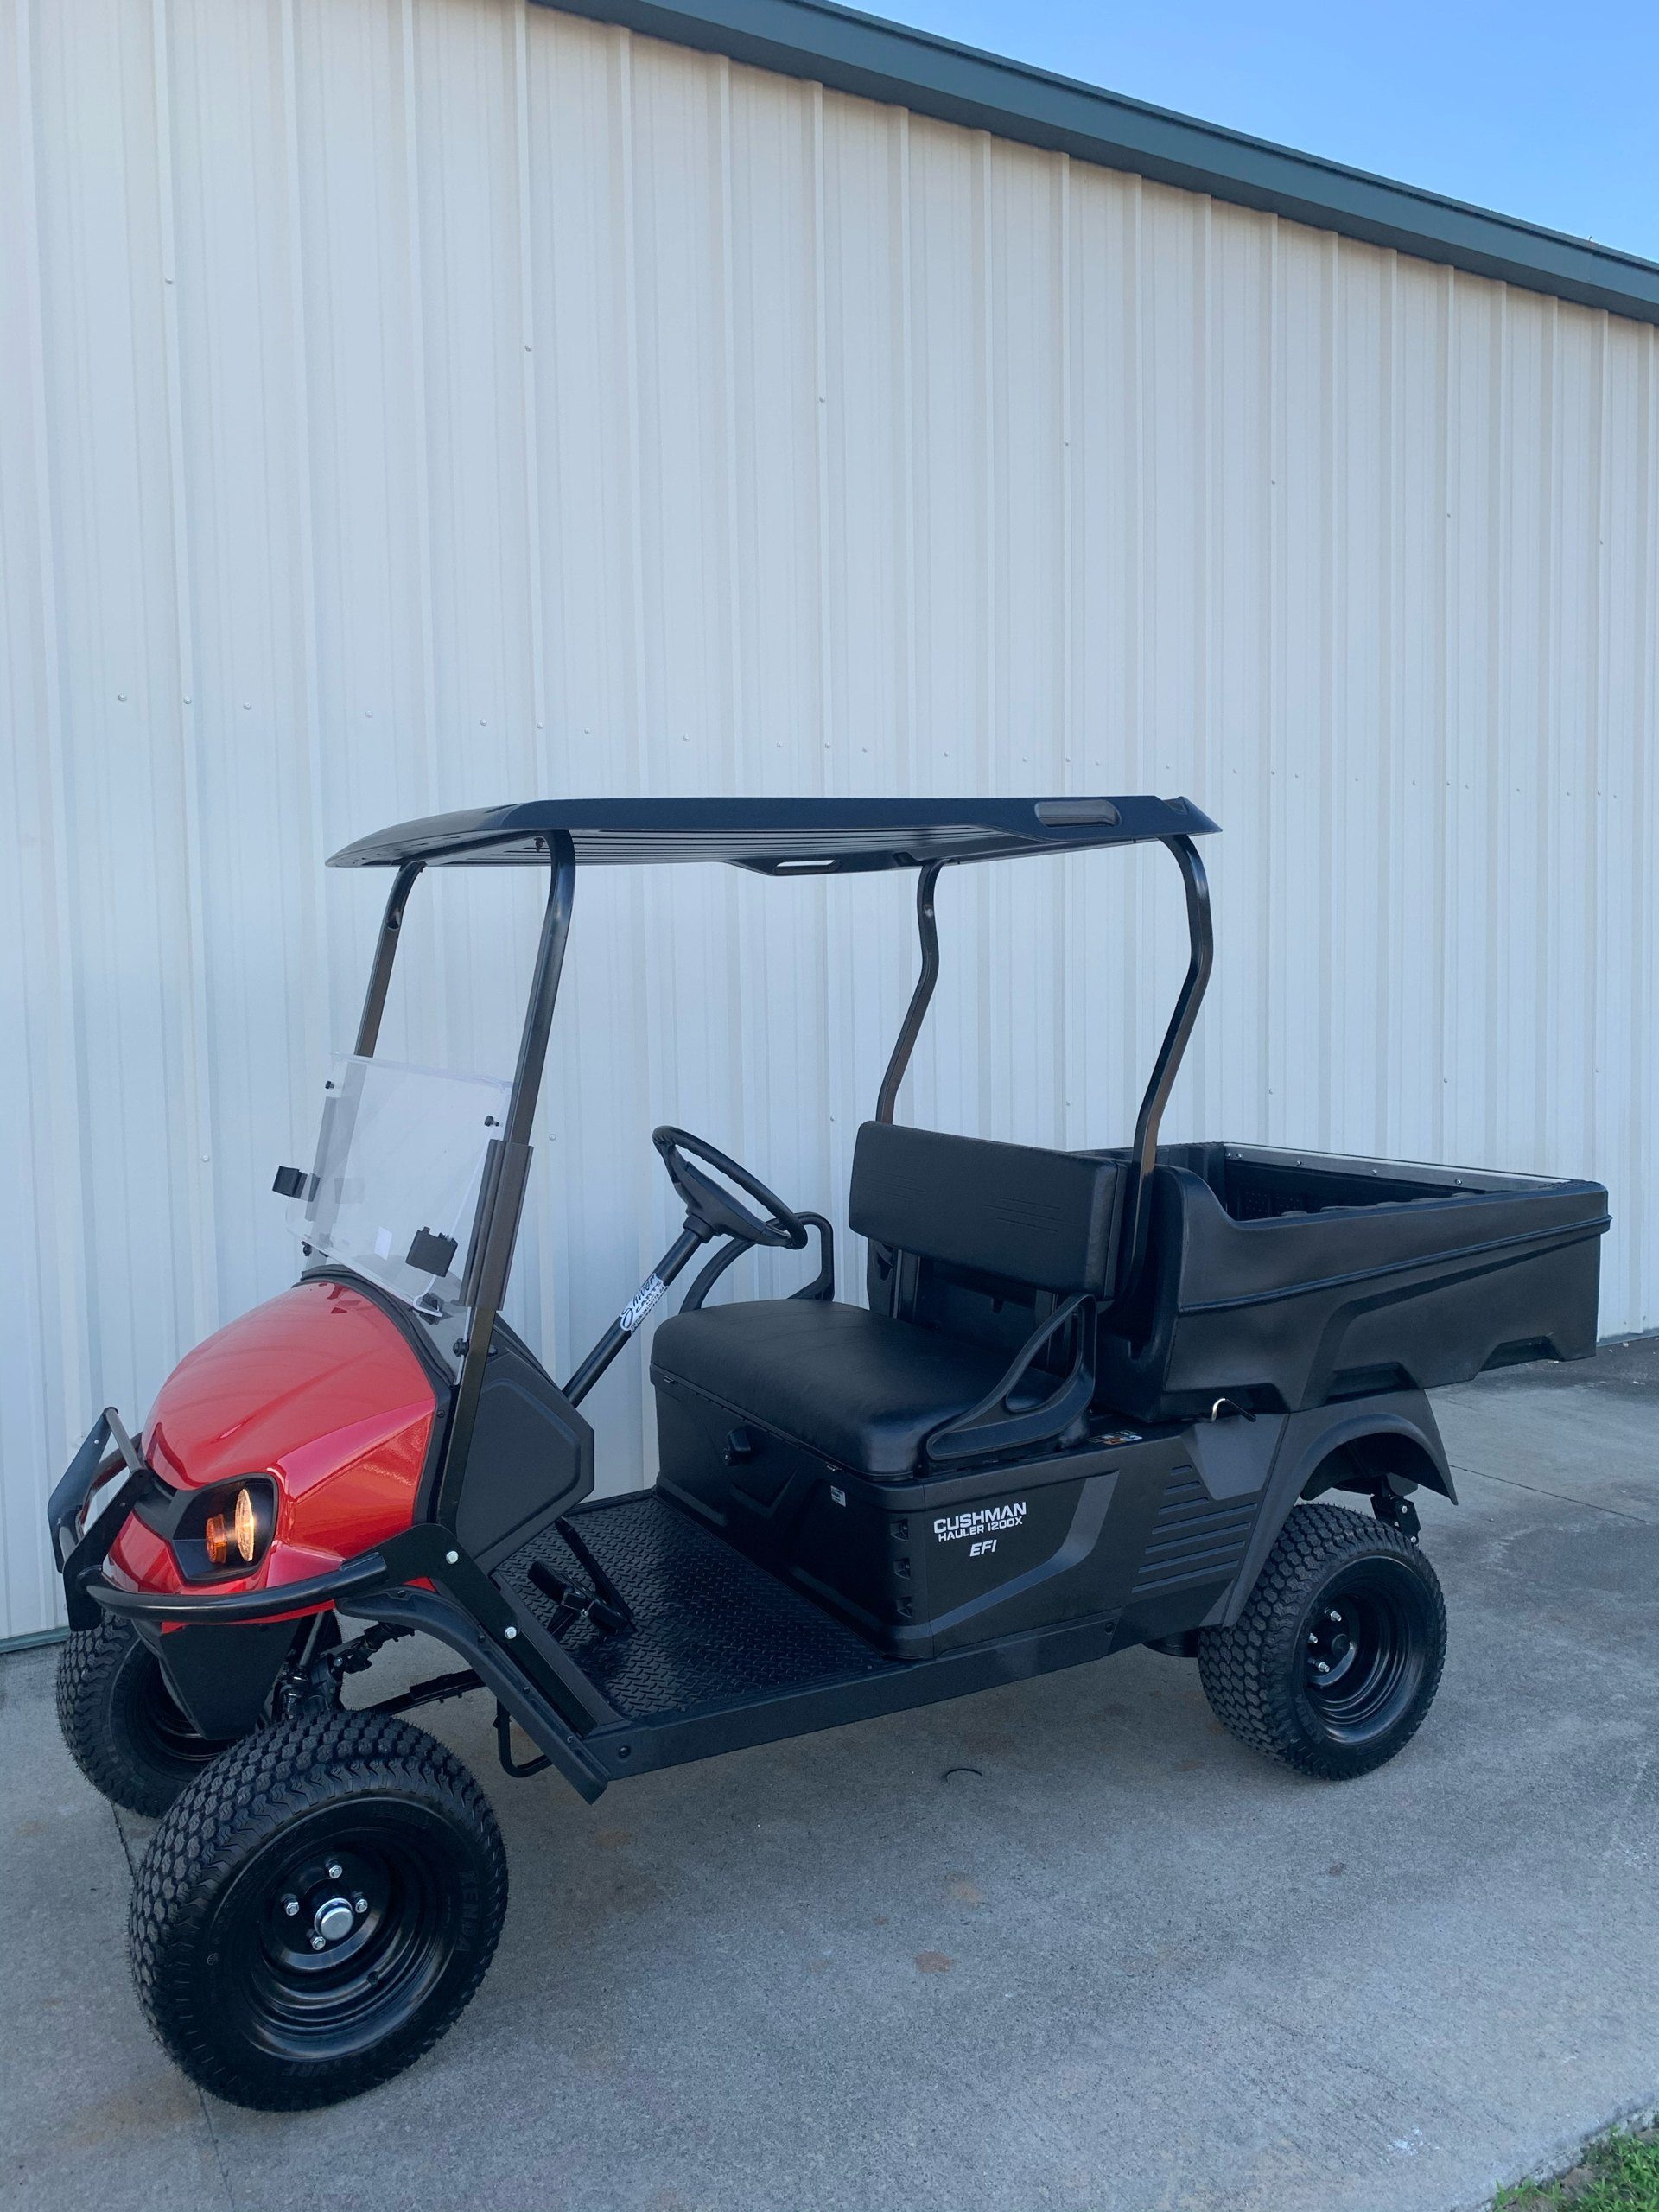 2021 CUSHMAN HAULER 1200 X EFI in Tifton, Georgia - Photo 1